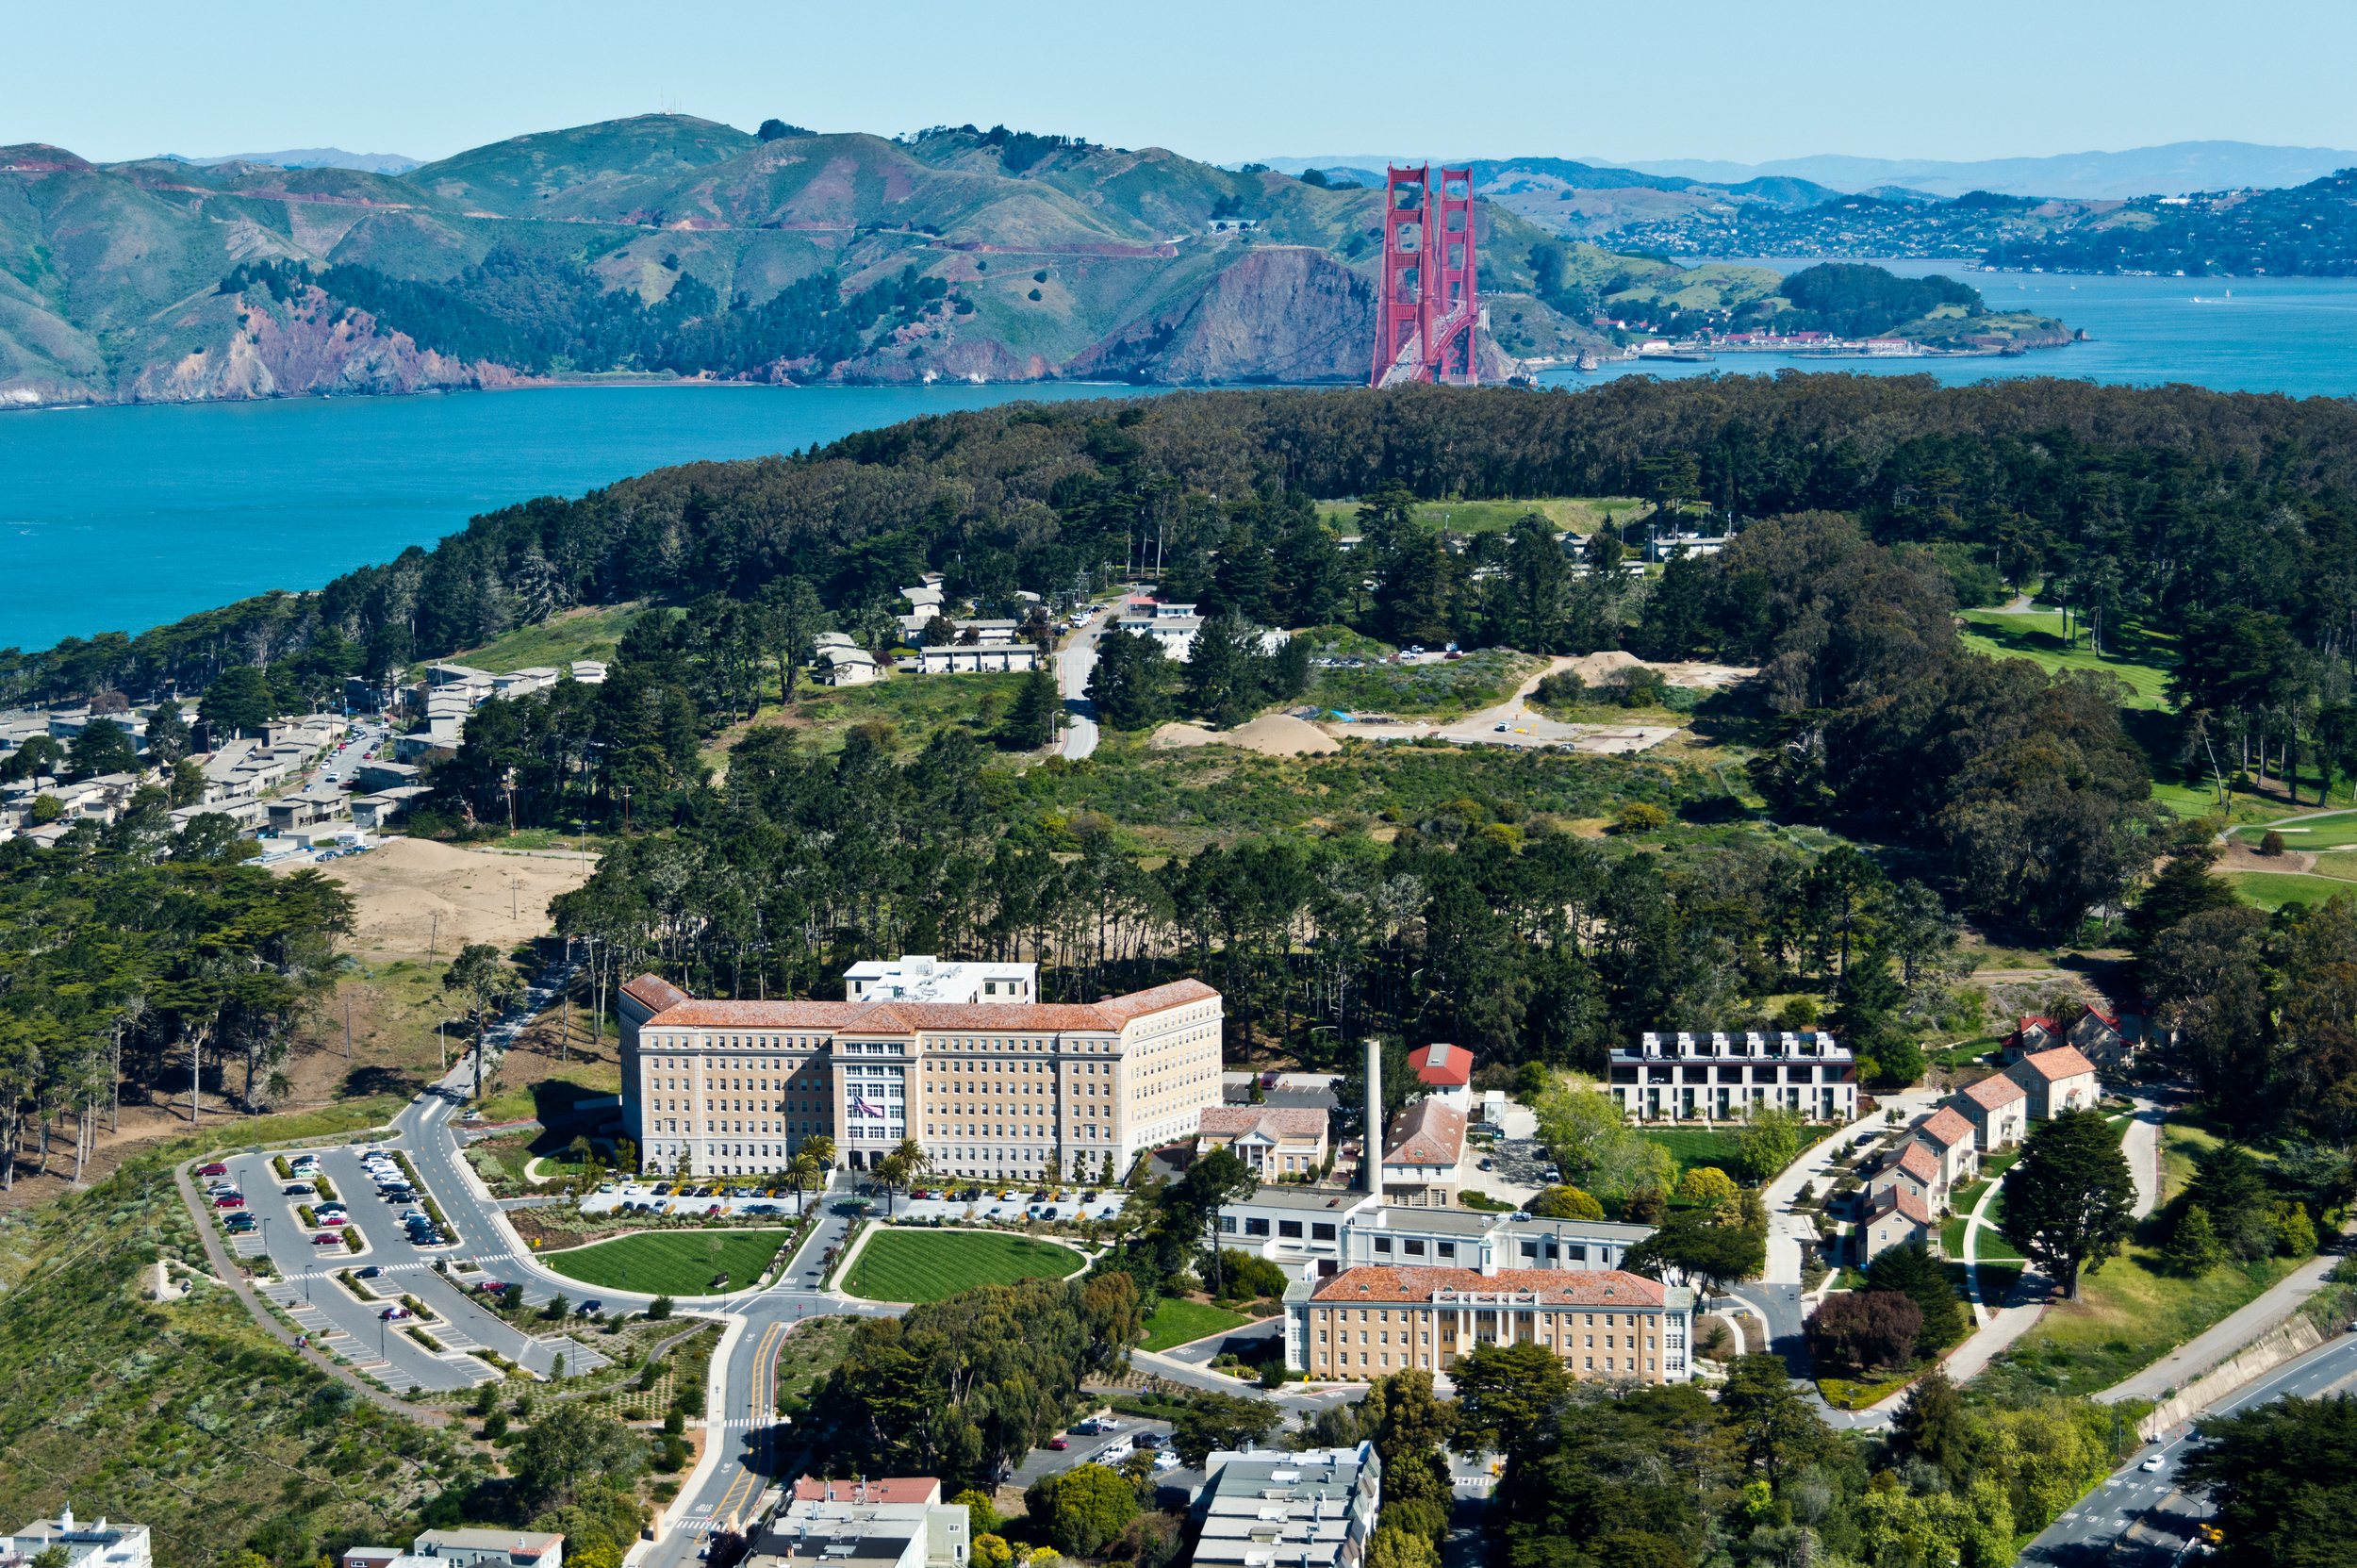 A former military base, the Presidio offers miles of wooded areas, hills and scenic vistas—as well as several restaurants and museums, a YMCA, pool and even a bowling alley. The area was recognized as a California Historical Landmark in 1933 and as a National Historic Landmark in 1962.